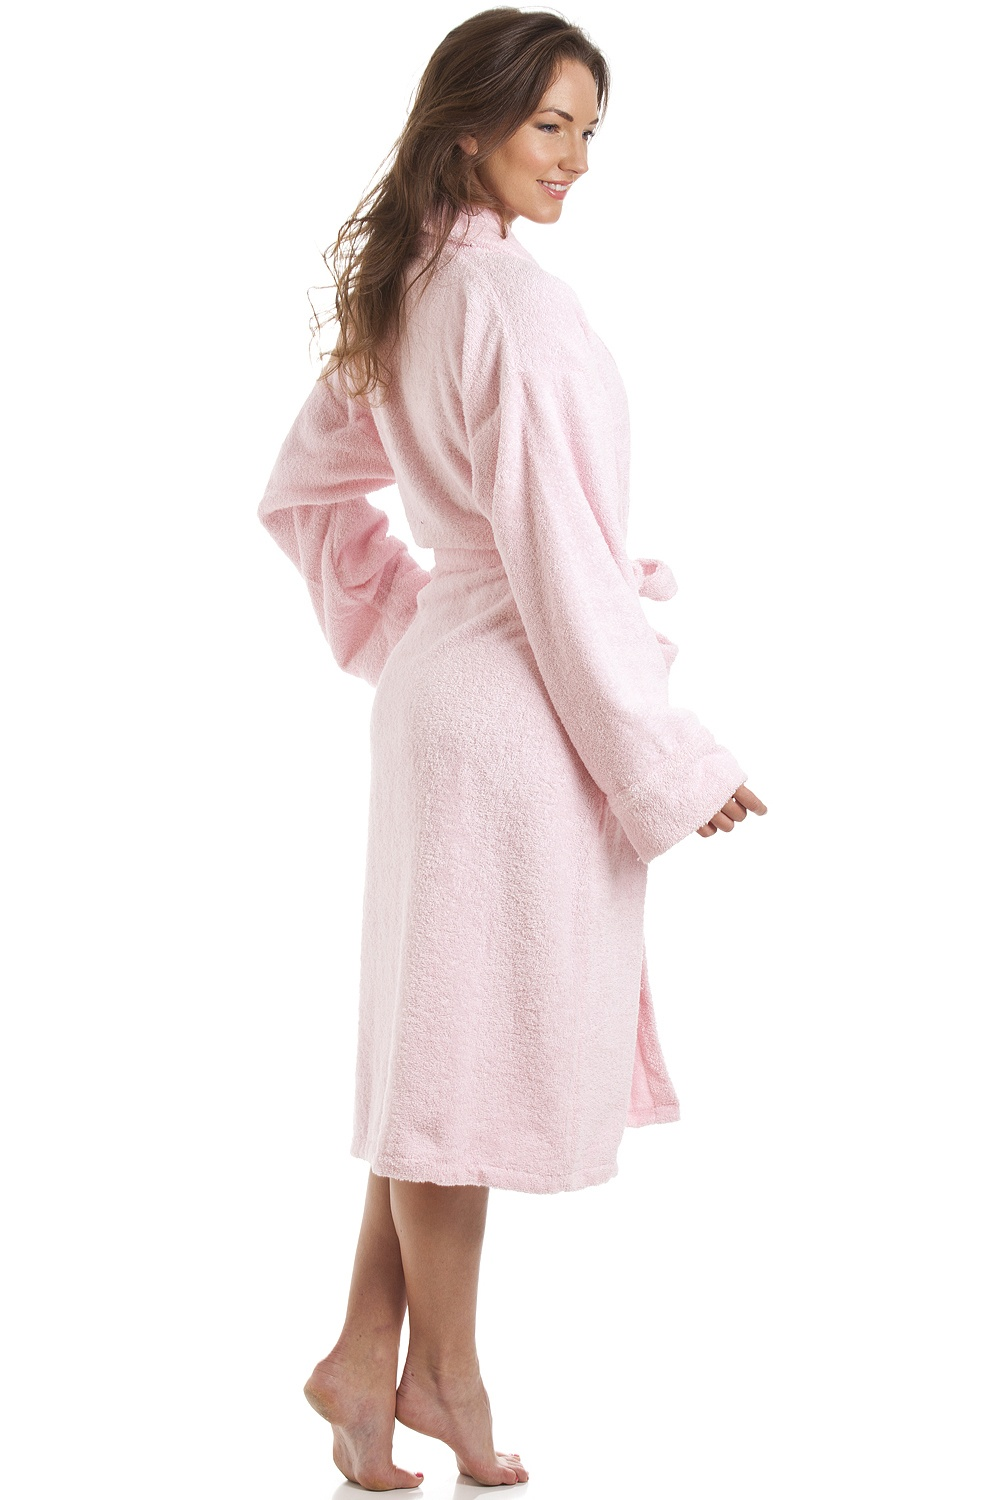 Camille Luxury Light Pink 100% Cotton Towelling Bath Robe 169d37242